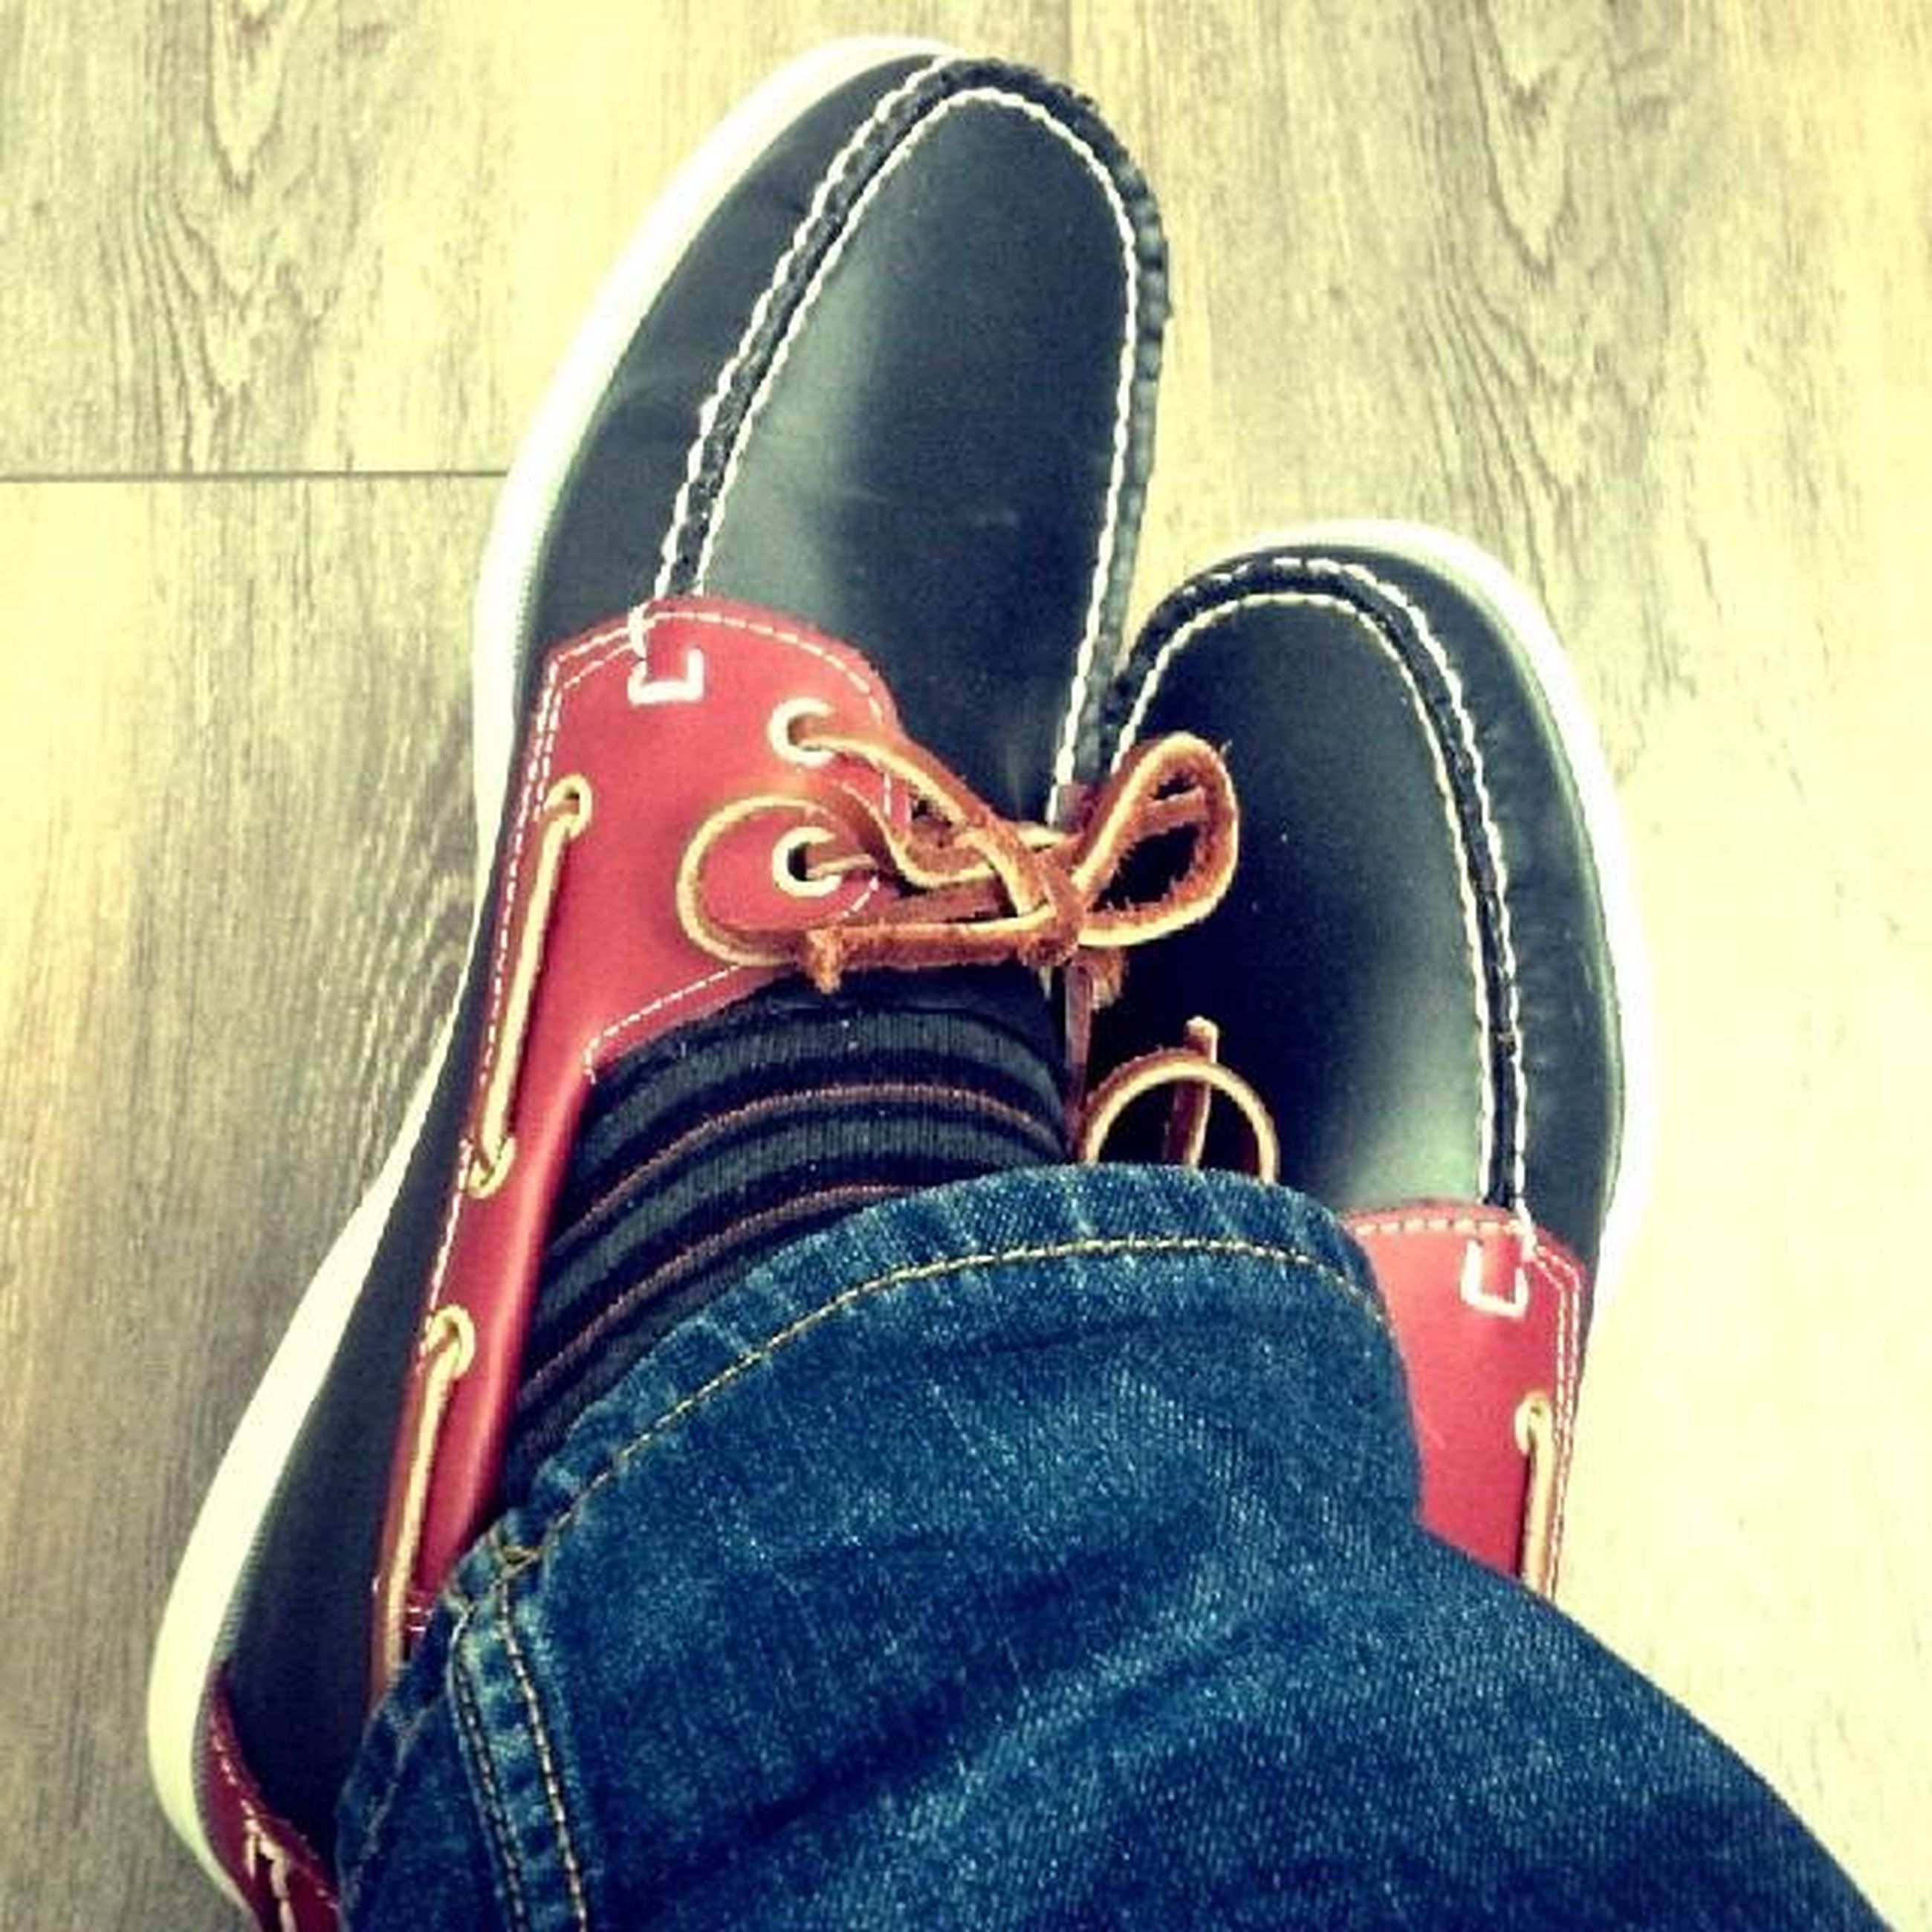 shoe, low section, person, jeans, footwear, high angle view, indoors, sitting, close-up, personal perspective, pair, men, canvas shoe, transportation, human foot, lifestyles, relaxation, black color